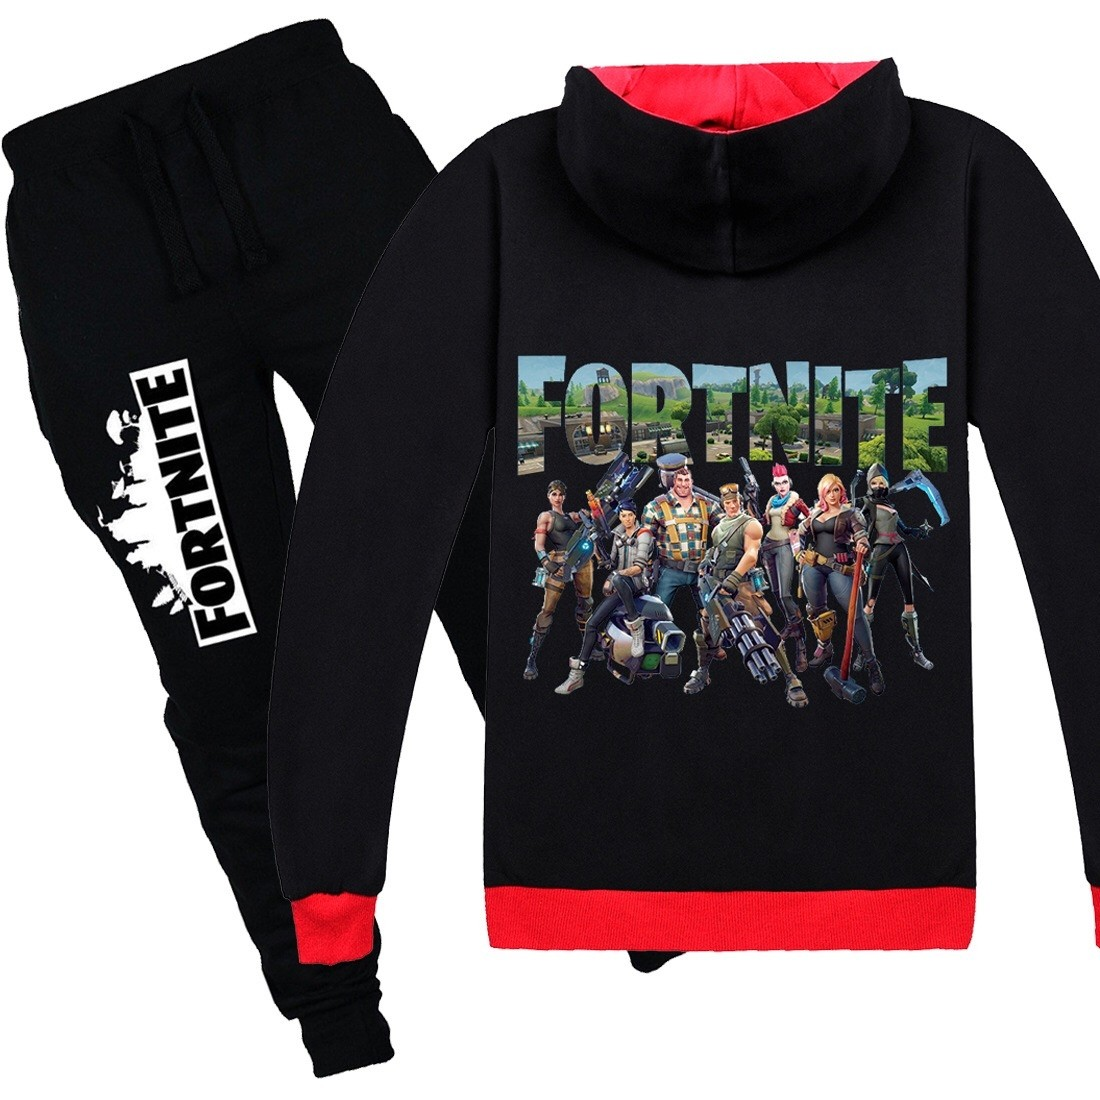 Fortnite Kids Cotton Zip Hoodies Boys Girls Sweatshirts Clothing Jacket 1